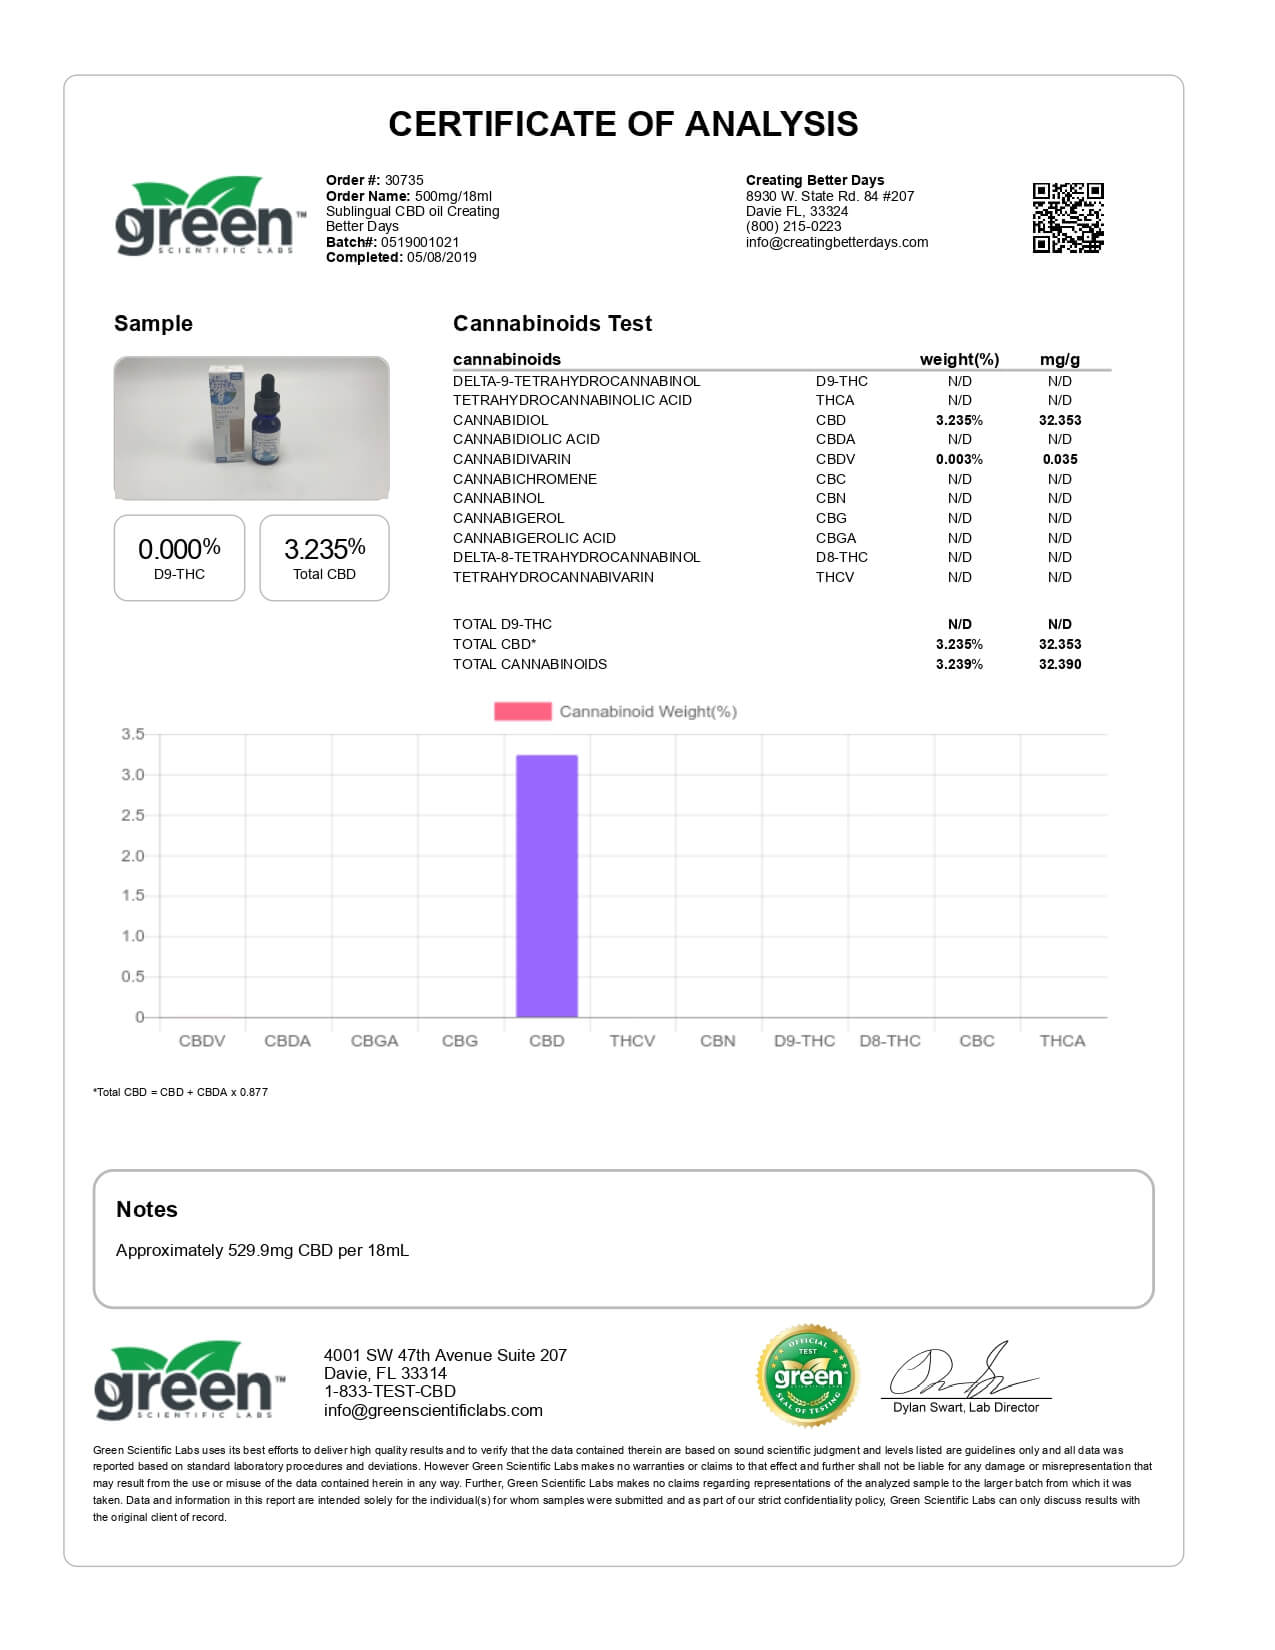 Creating Better Days CBD Tincture Sublingual Oil 500mg Lab Report